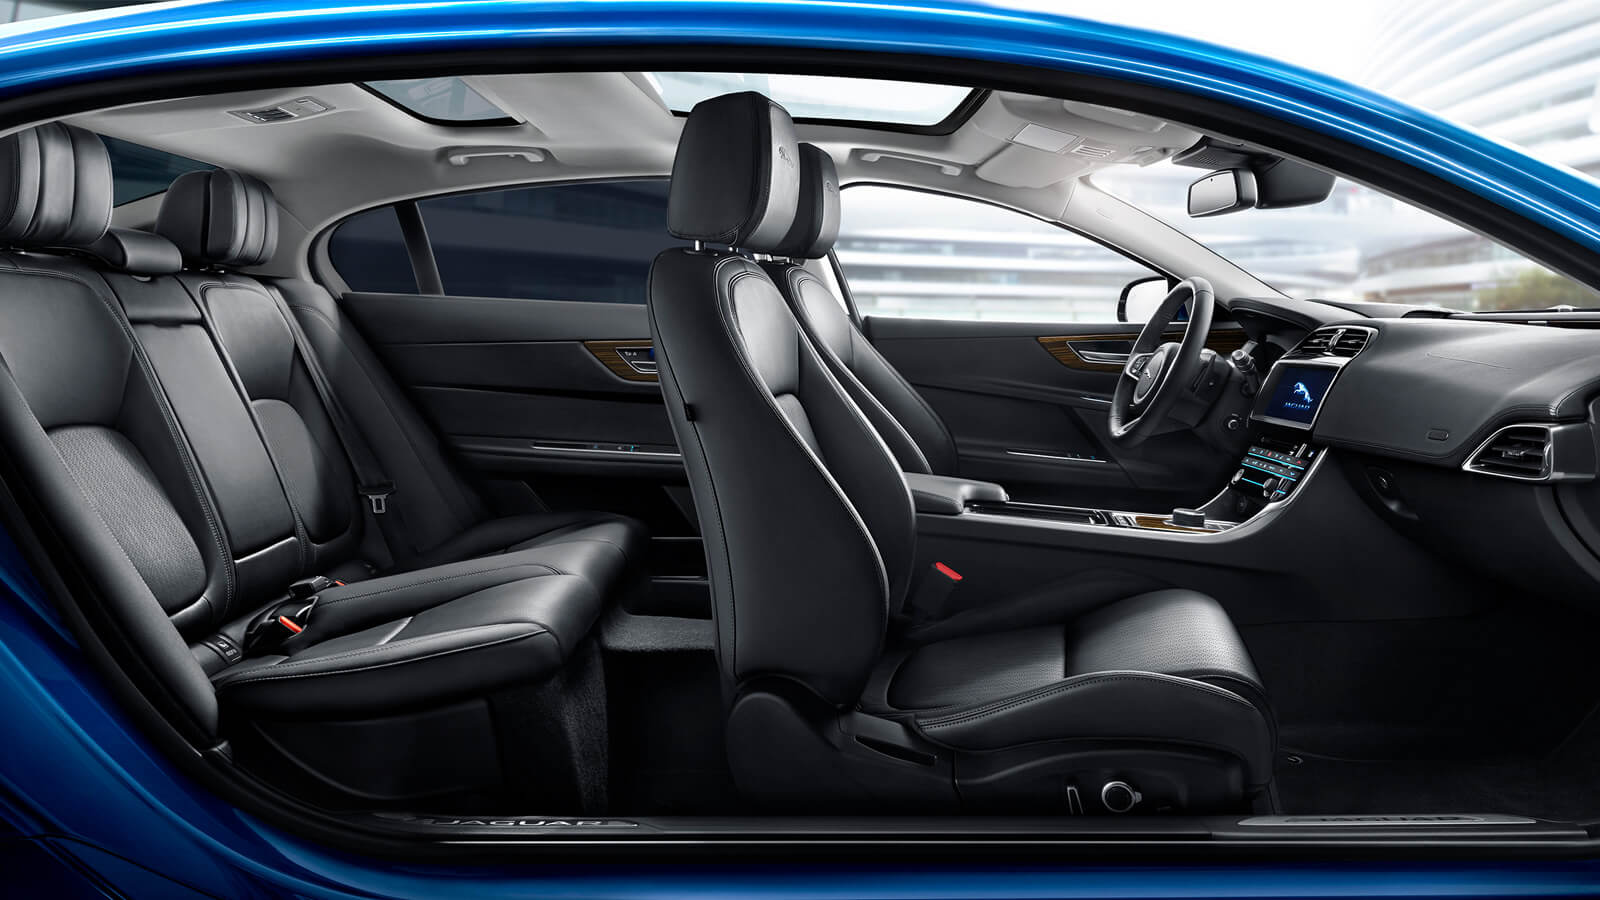 side view of the interior of a blue jaguar xe.